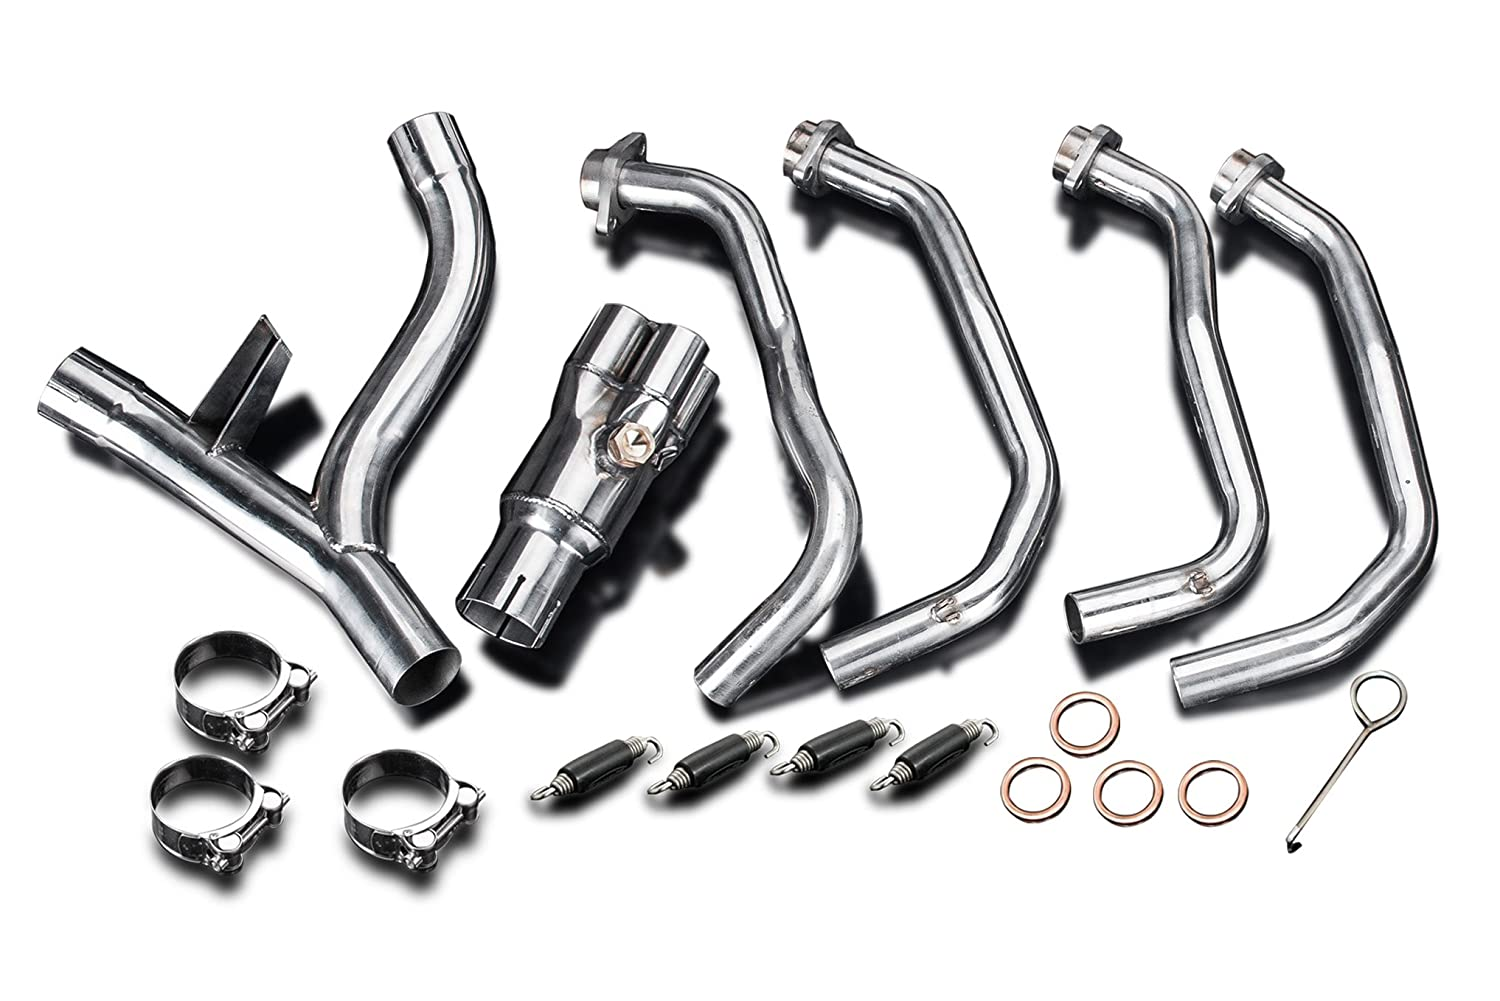 Delkevic 4-2 Headers Kawasaki Z1000 Stainless Steel Exhaust 10-16